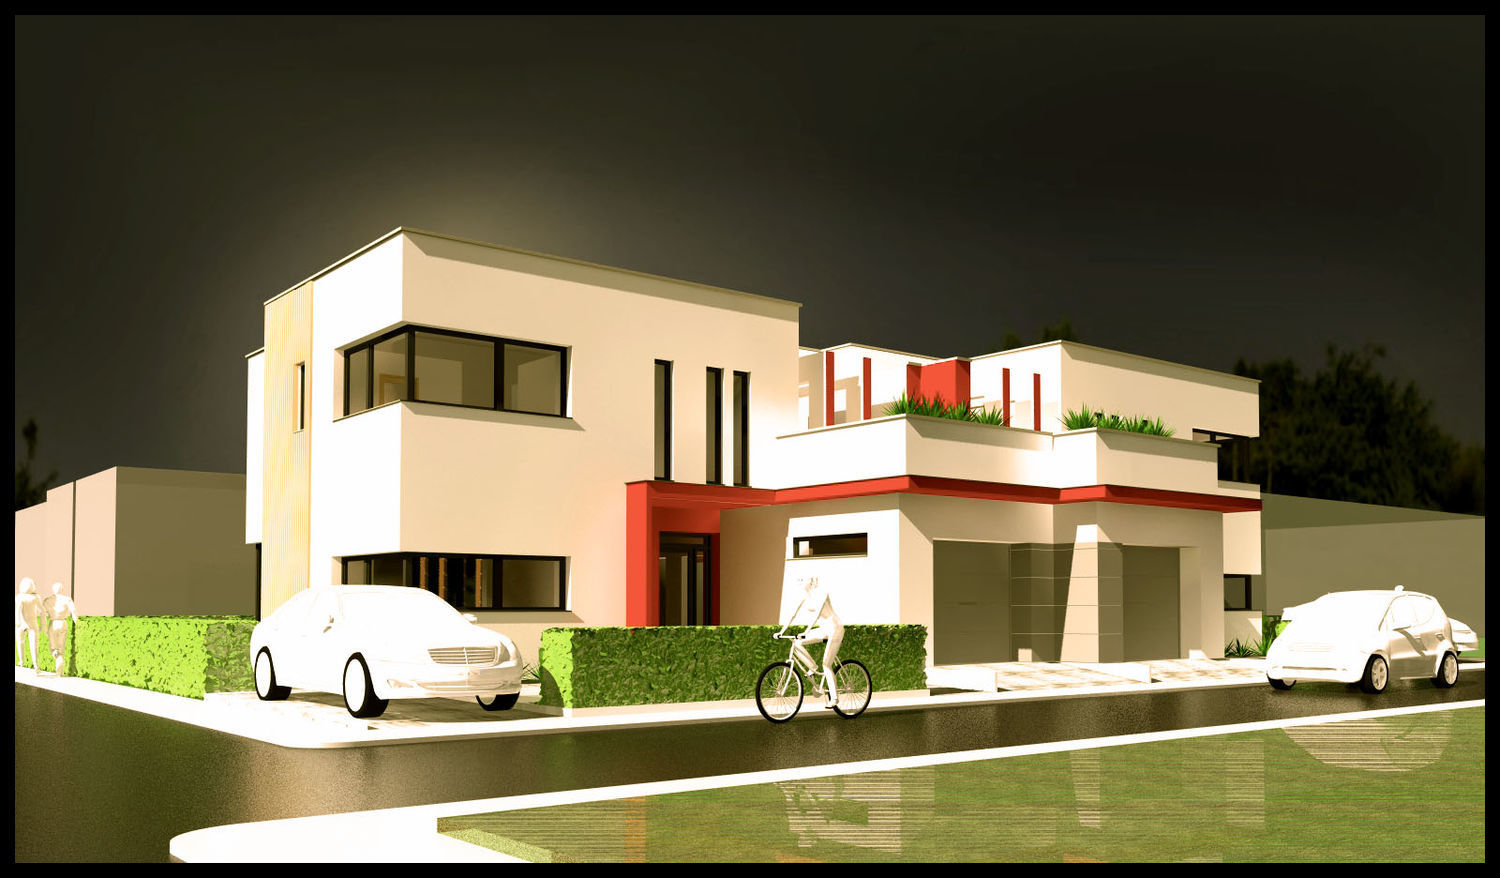 | semidetached house | visualization | - 1 by Roni